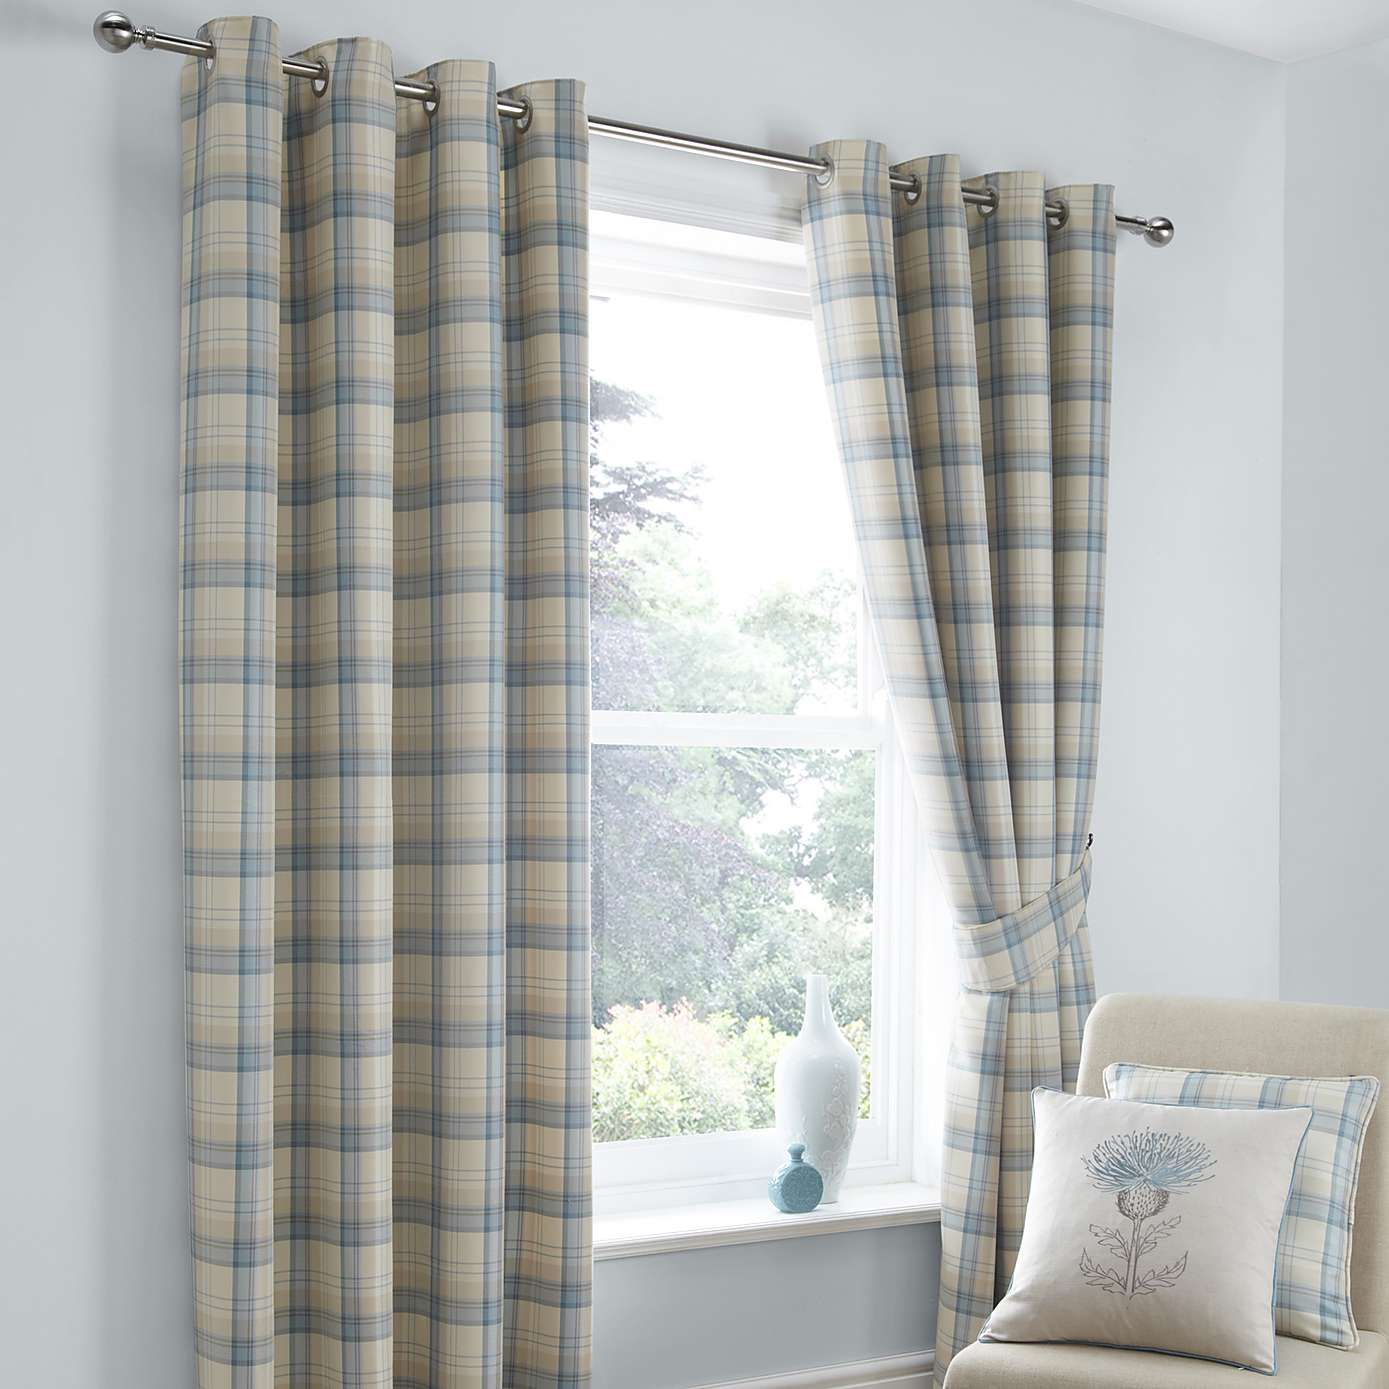 Duck Egg Balmoral Eyelet Curtain Collection Dunelm